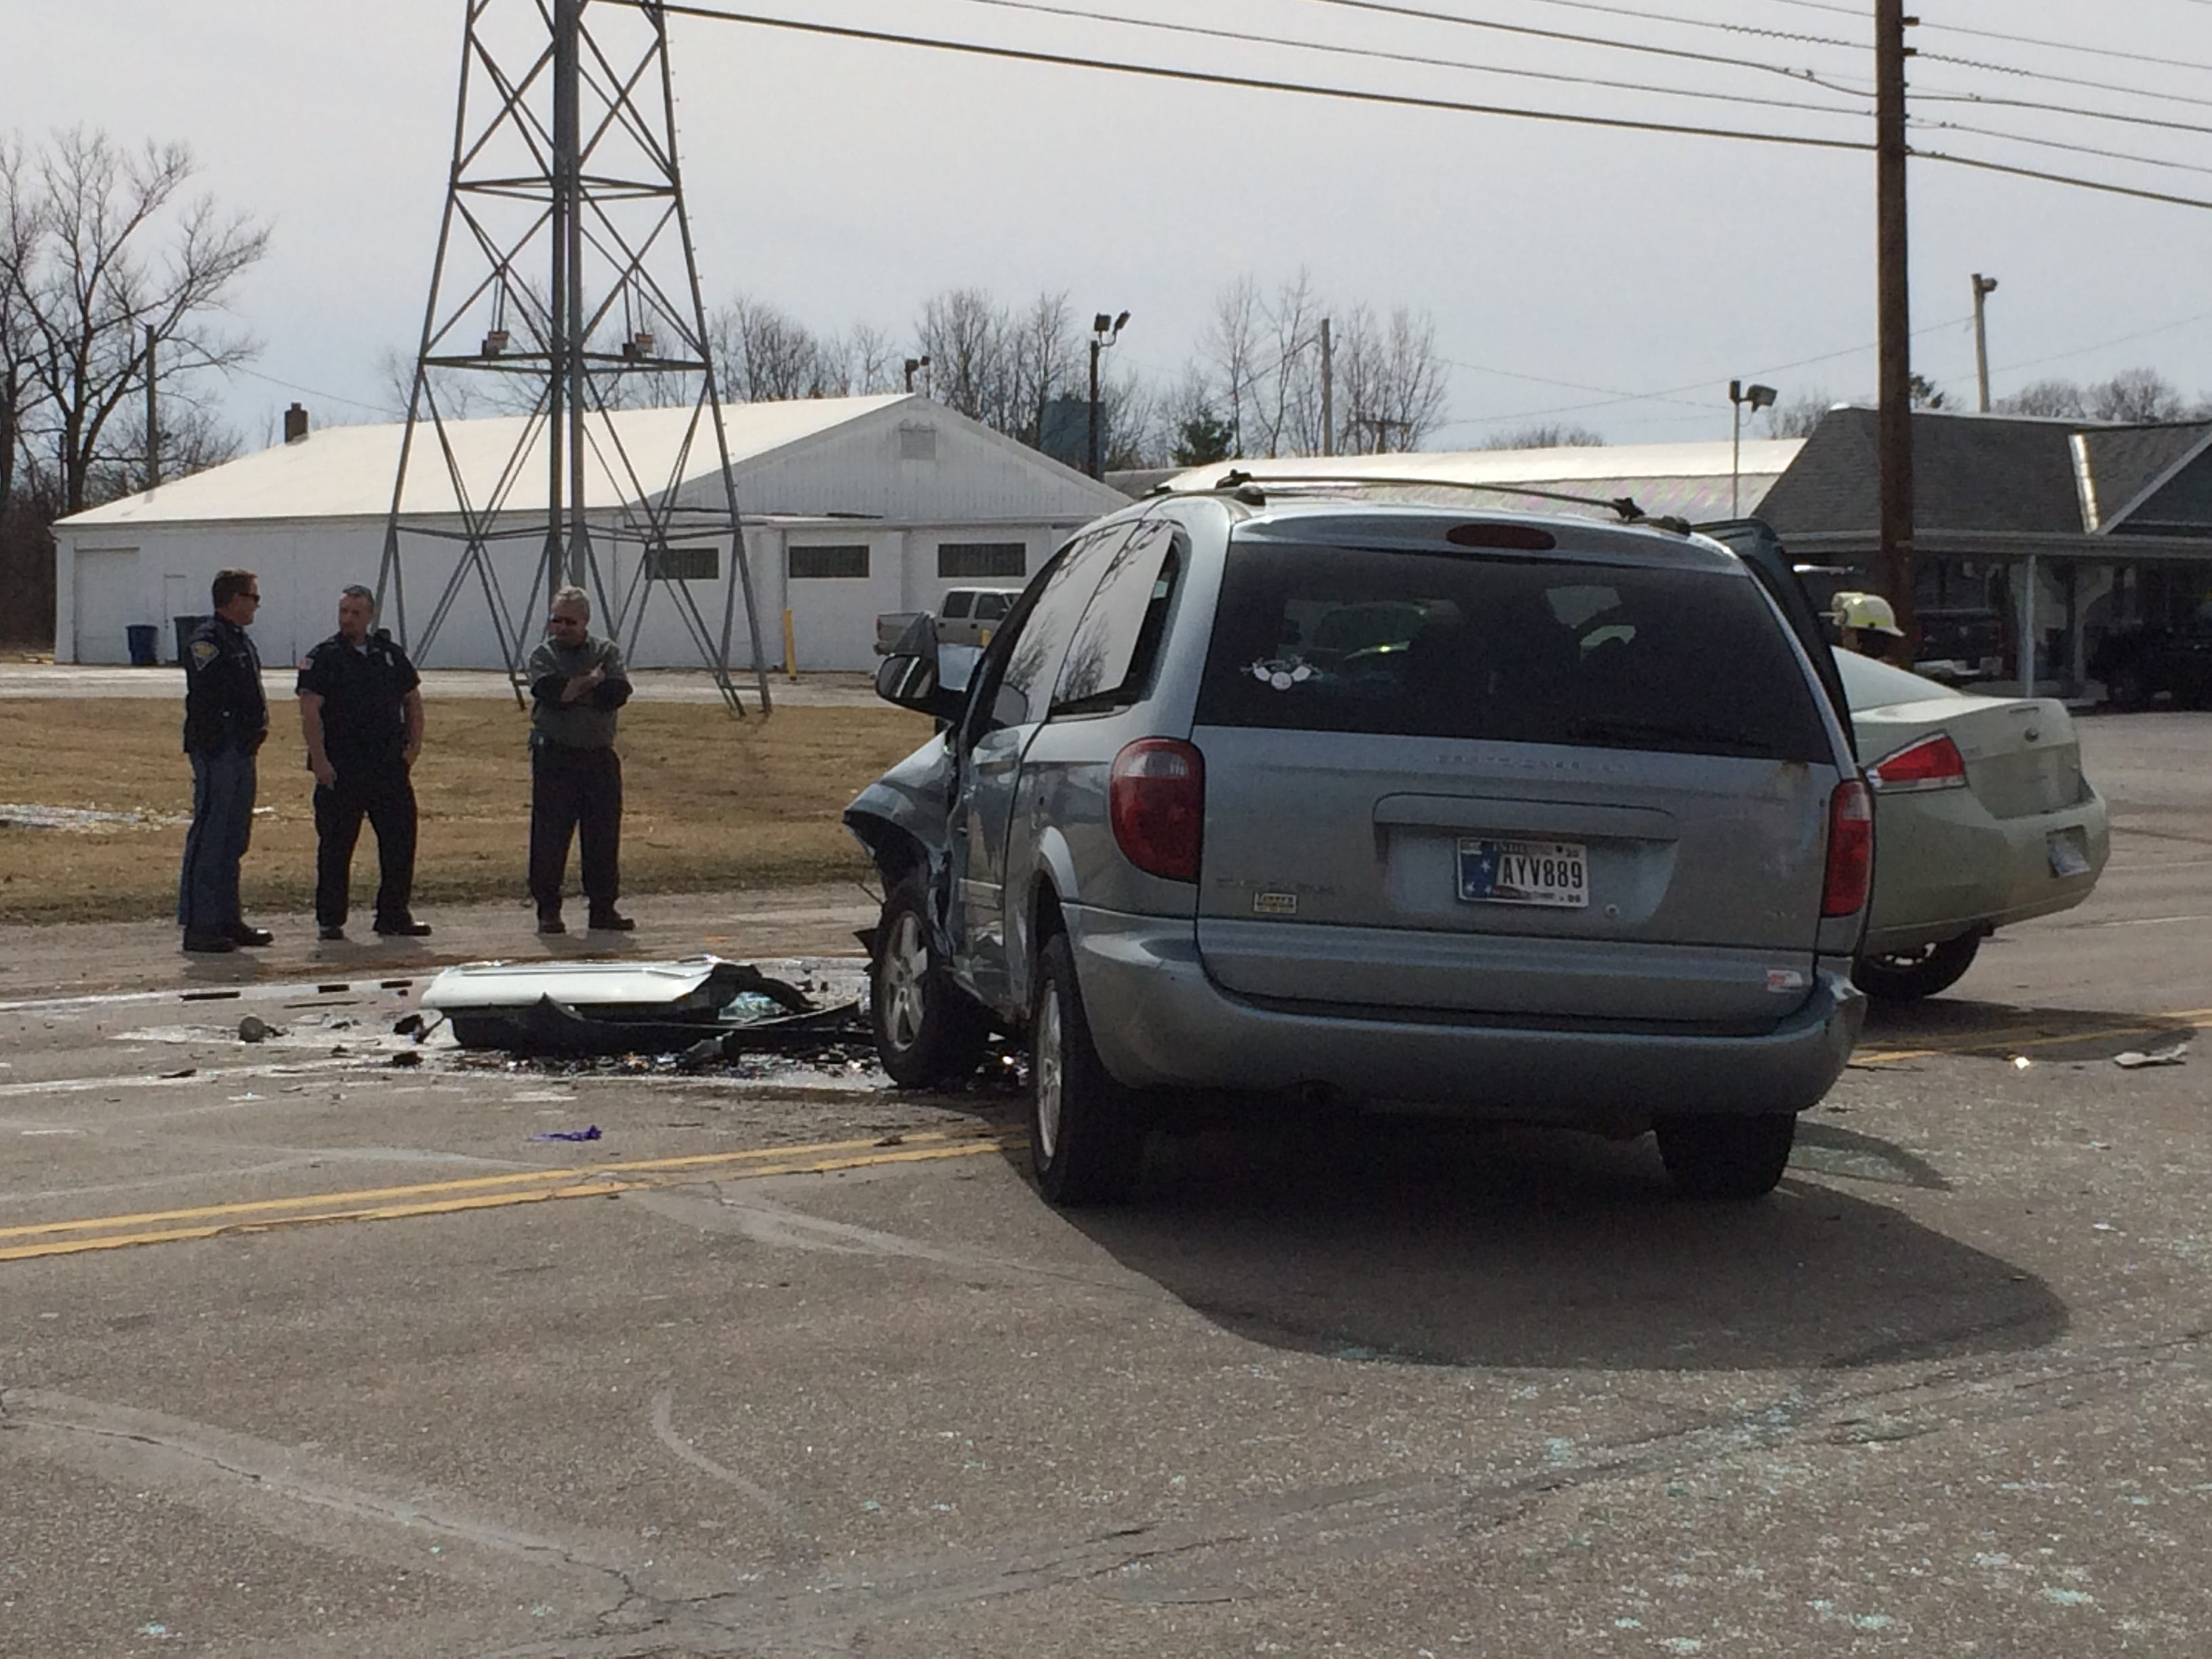 One person died and three people were taken to the hospital after a Tuesday afternoon accident in the 3900 block of National Road West.